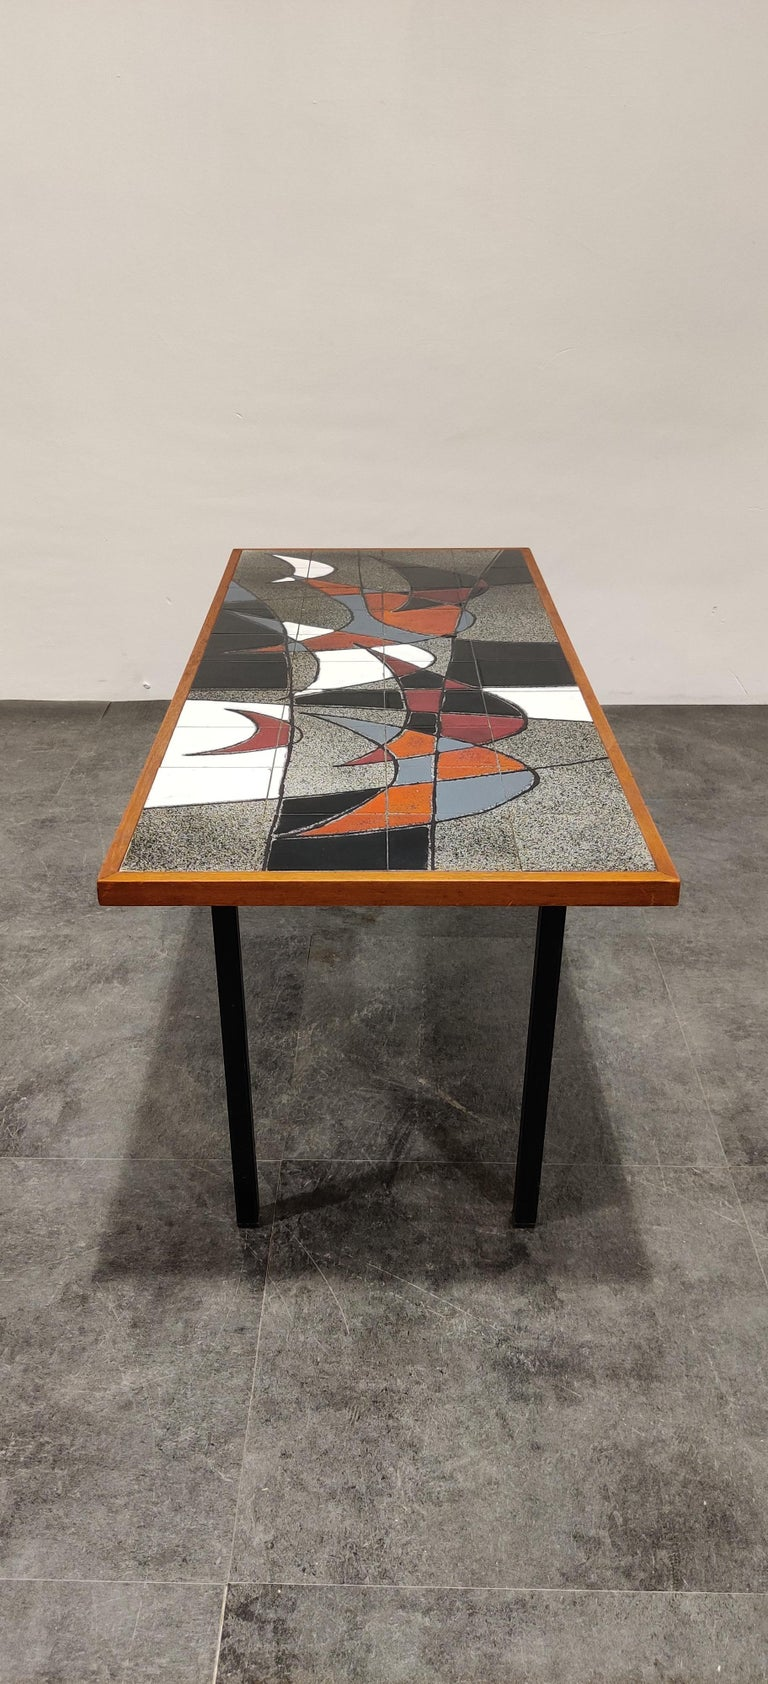 Belgian Midcentury Ceramic Coffee Table by Vigneron, 1960s For Sale